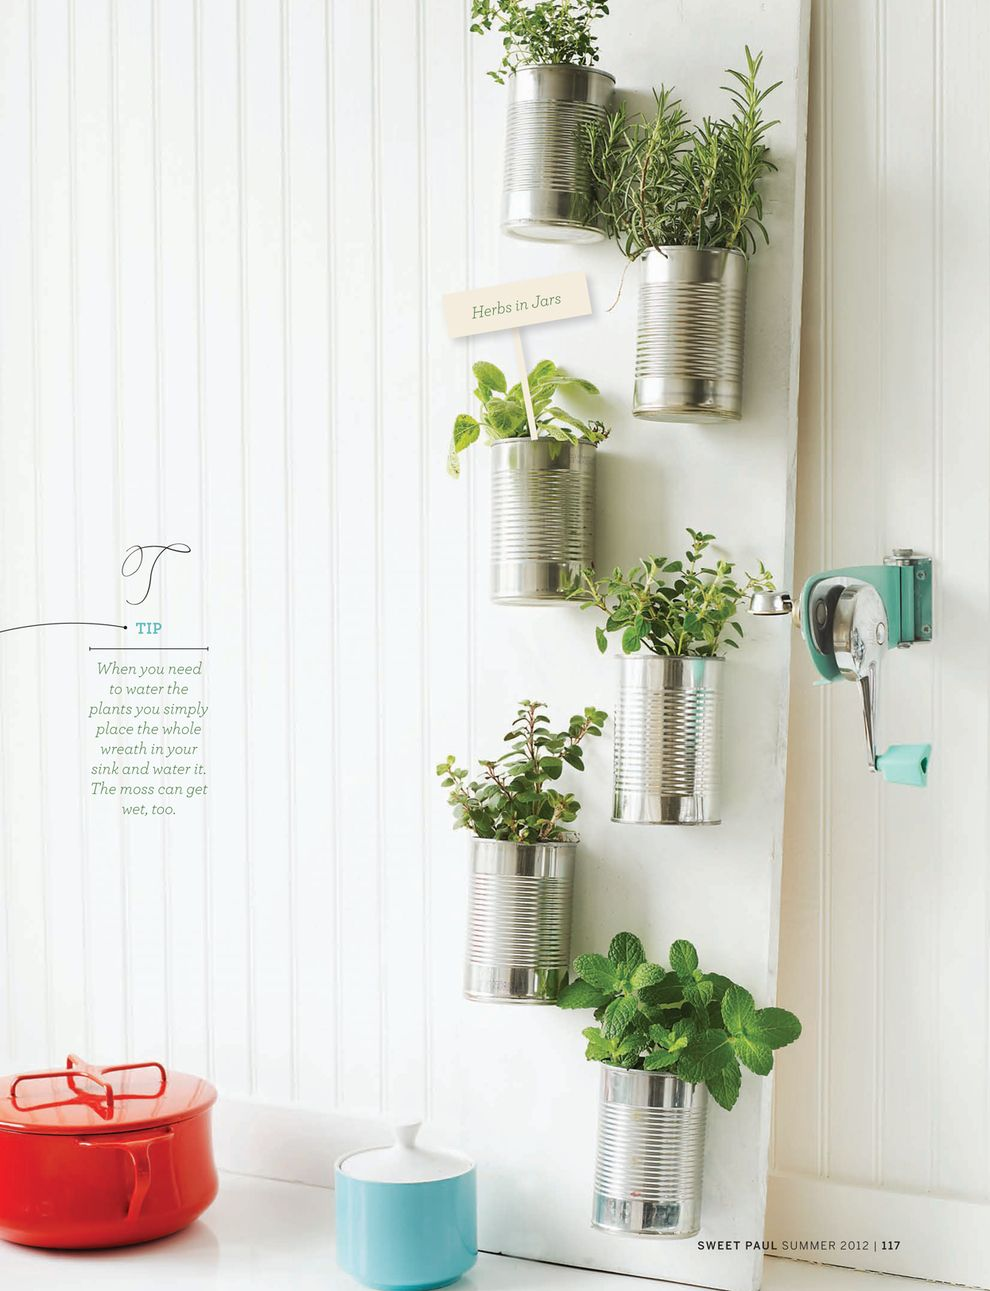 Sweet Paul's indoor herb gardens are easy and functional